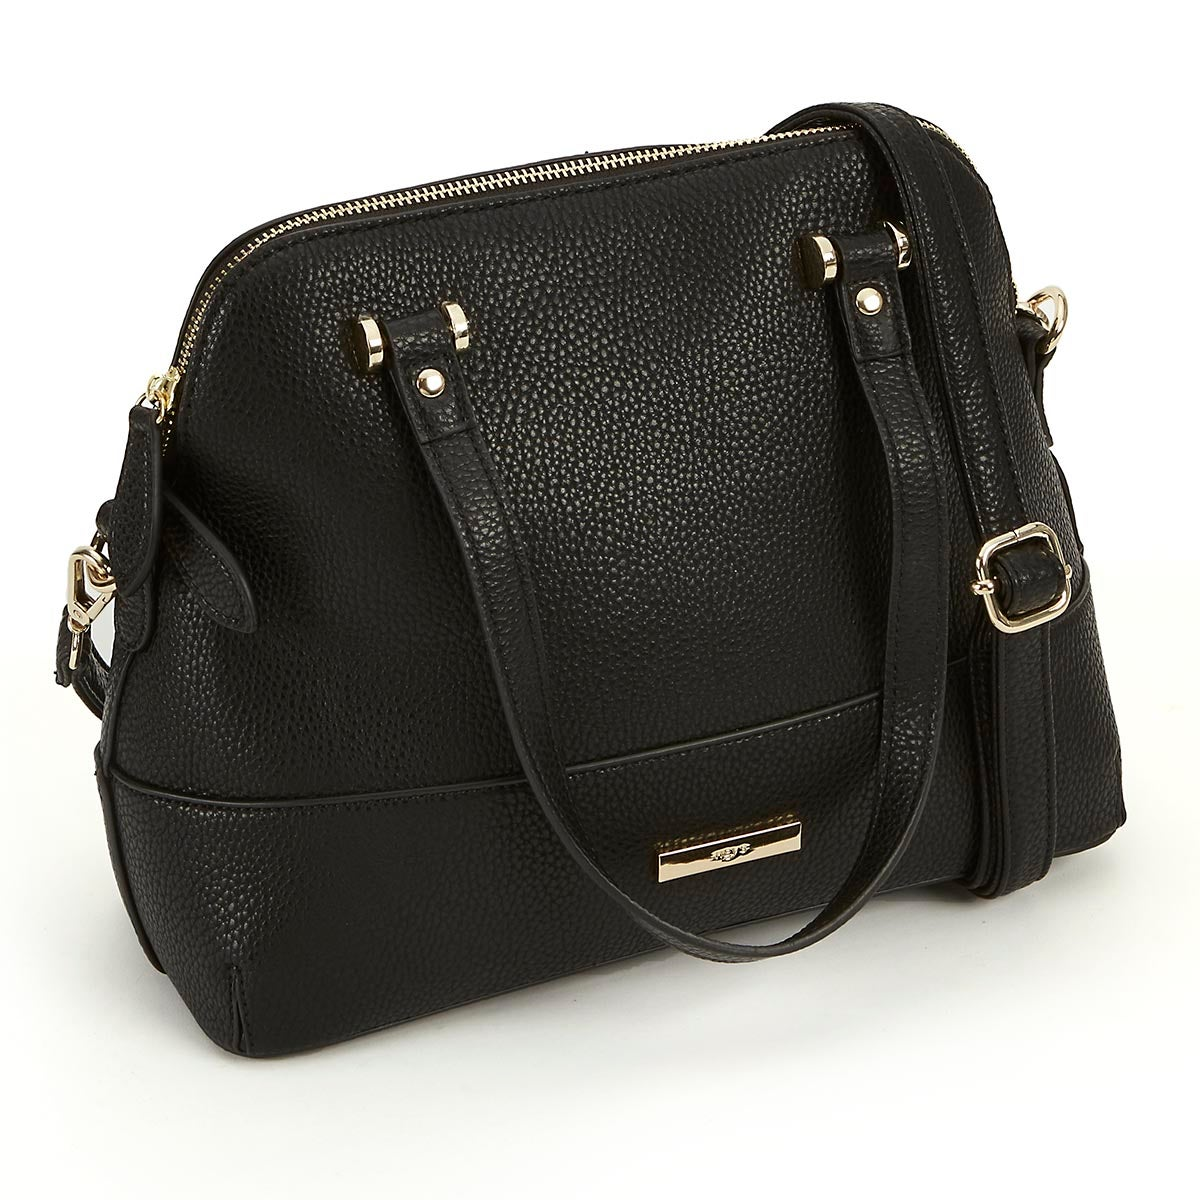 Lds Everyday Essentials blk dome satchel